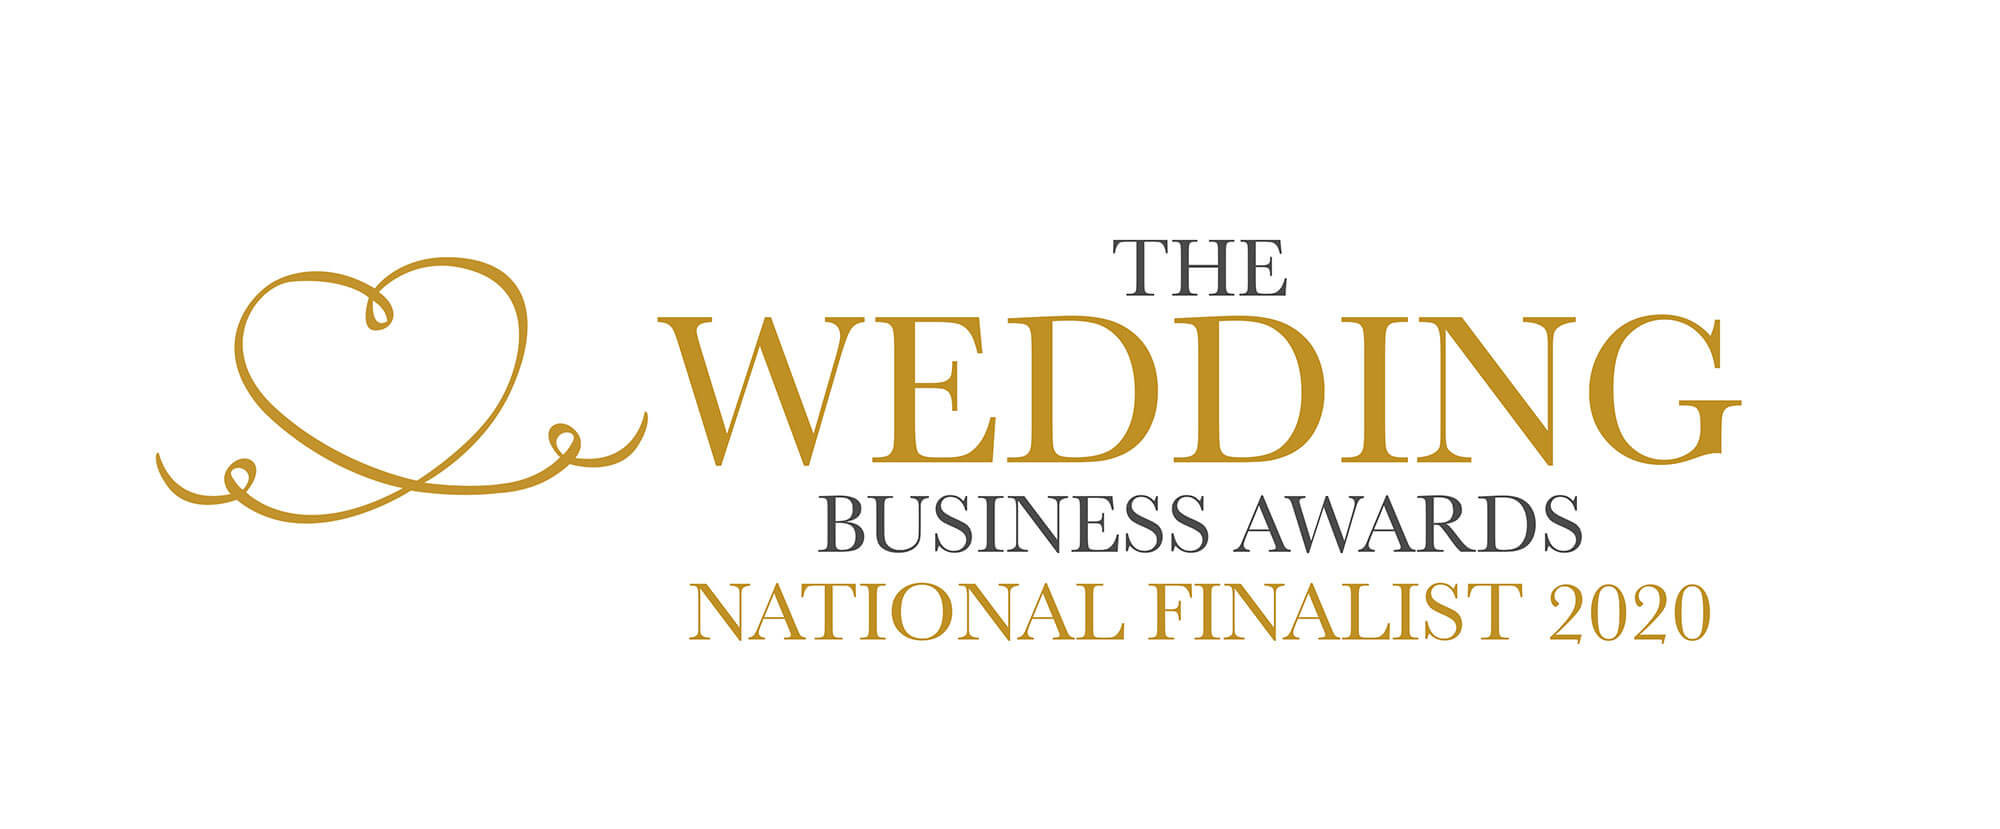 The Wedding Business Awards 2020